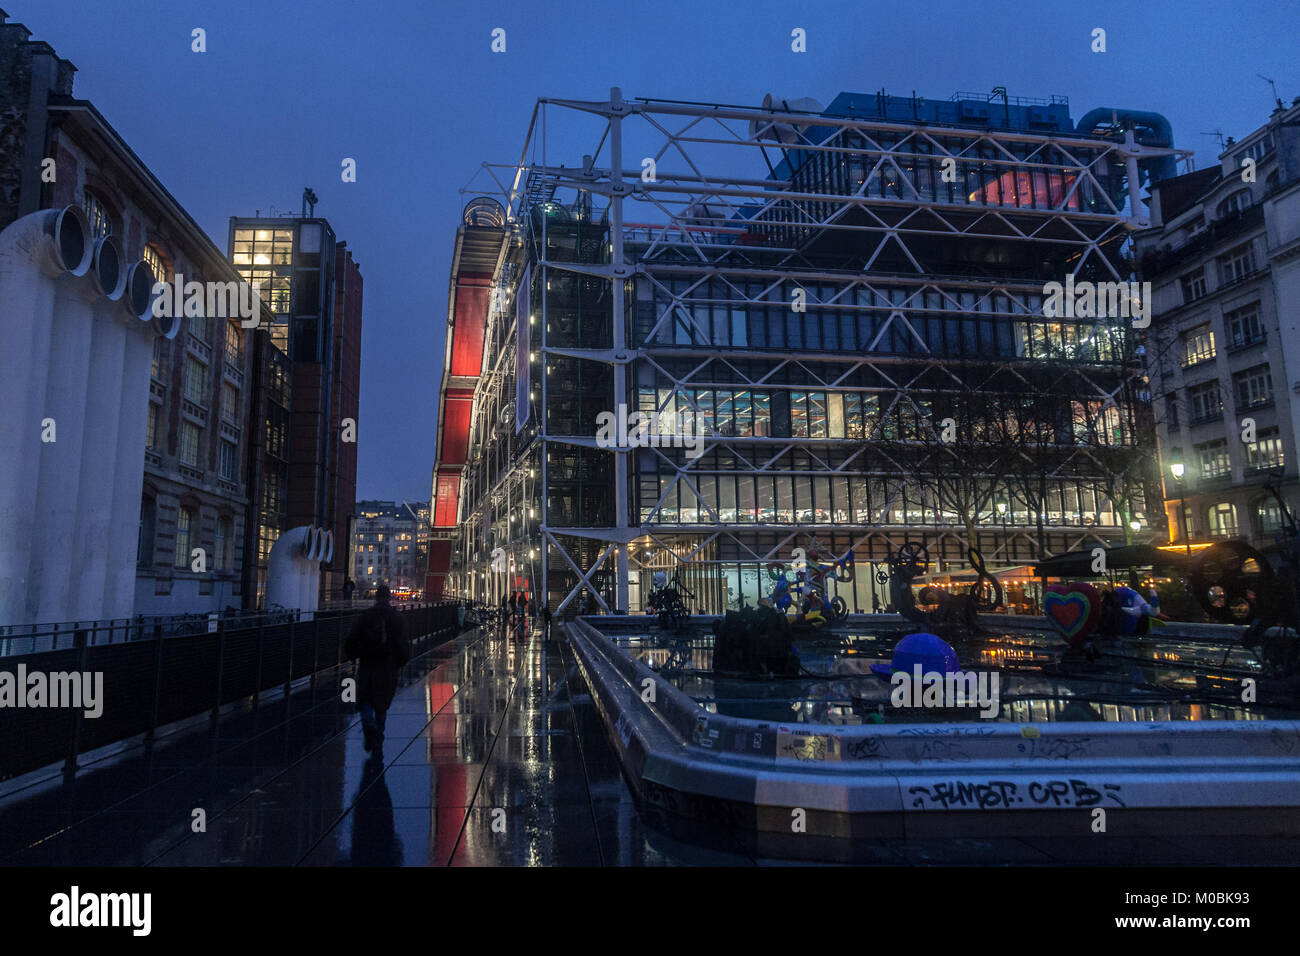 PARIS, FRANCE - DECEMBER 20, 2017:  Centre Pompidou at night. located in beaubourg District, it is the biggest modern - Stock Image